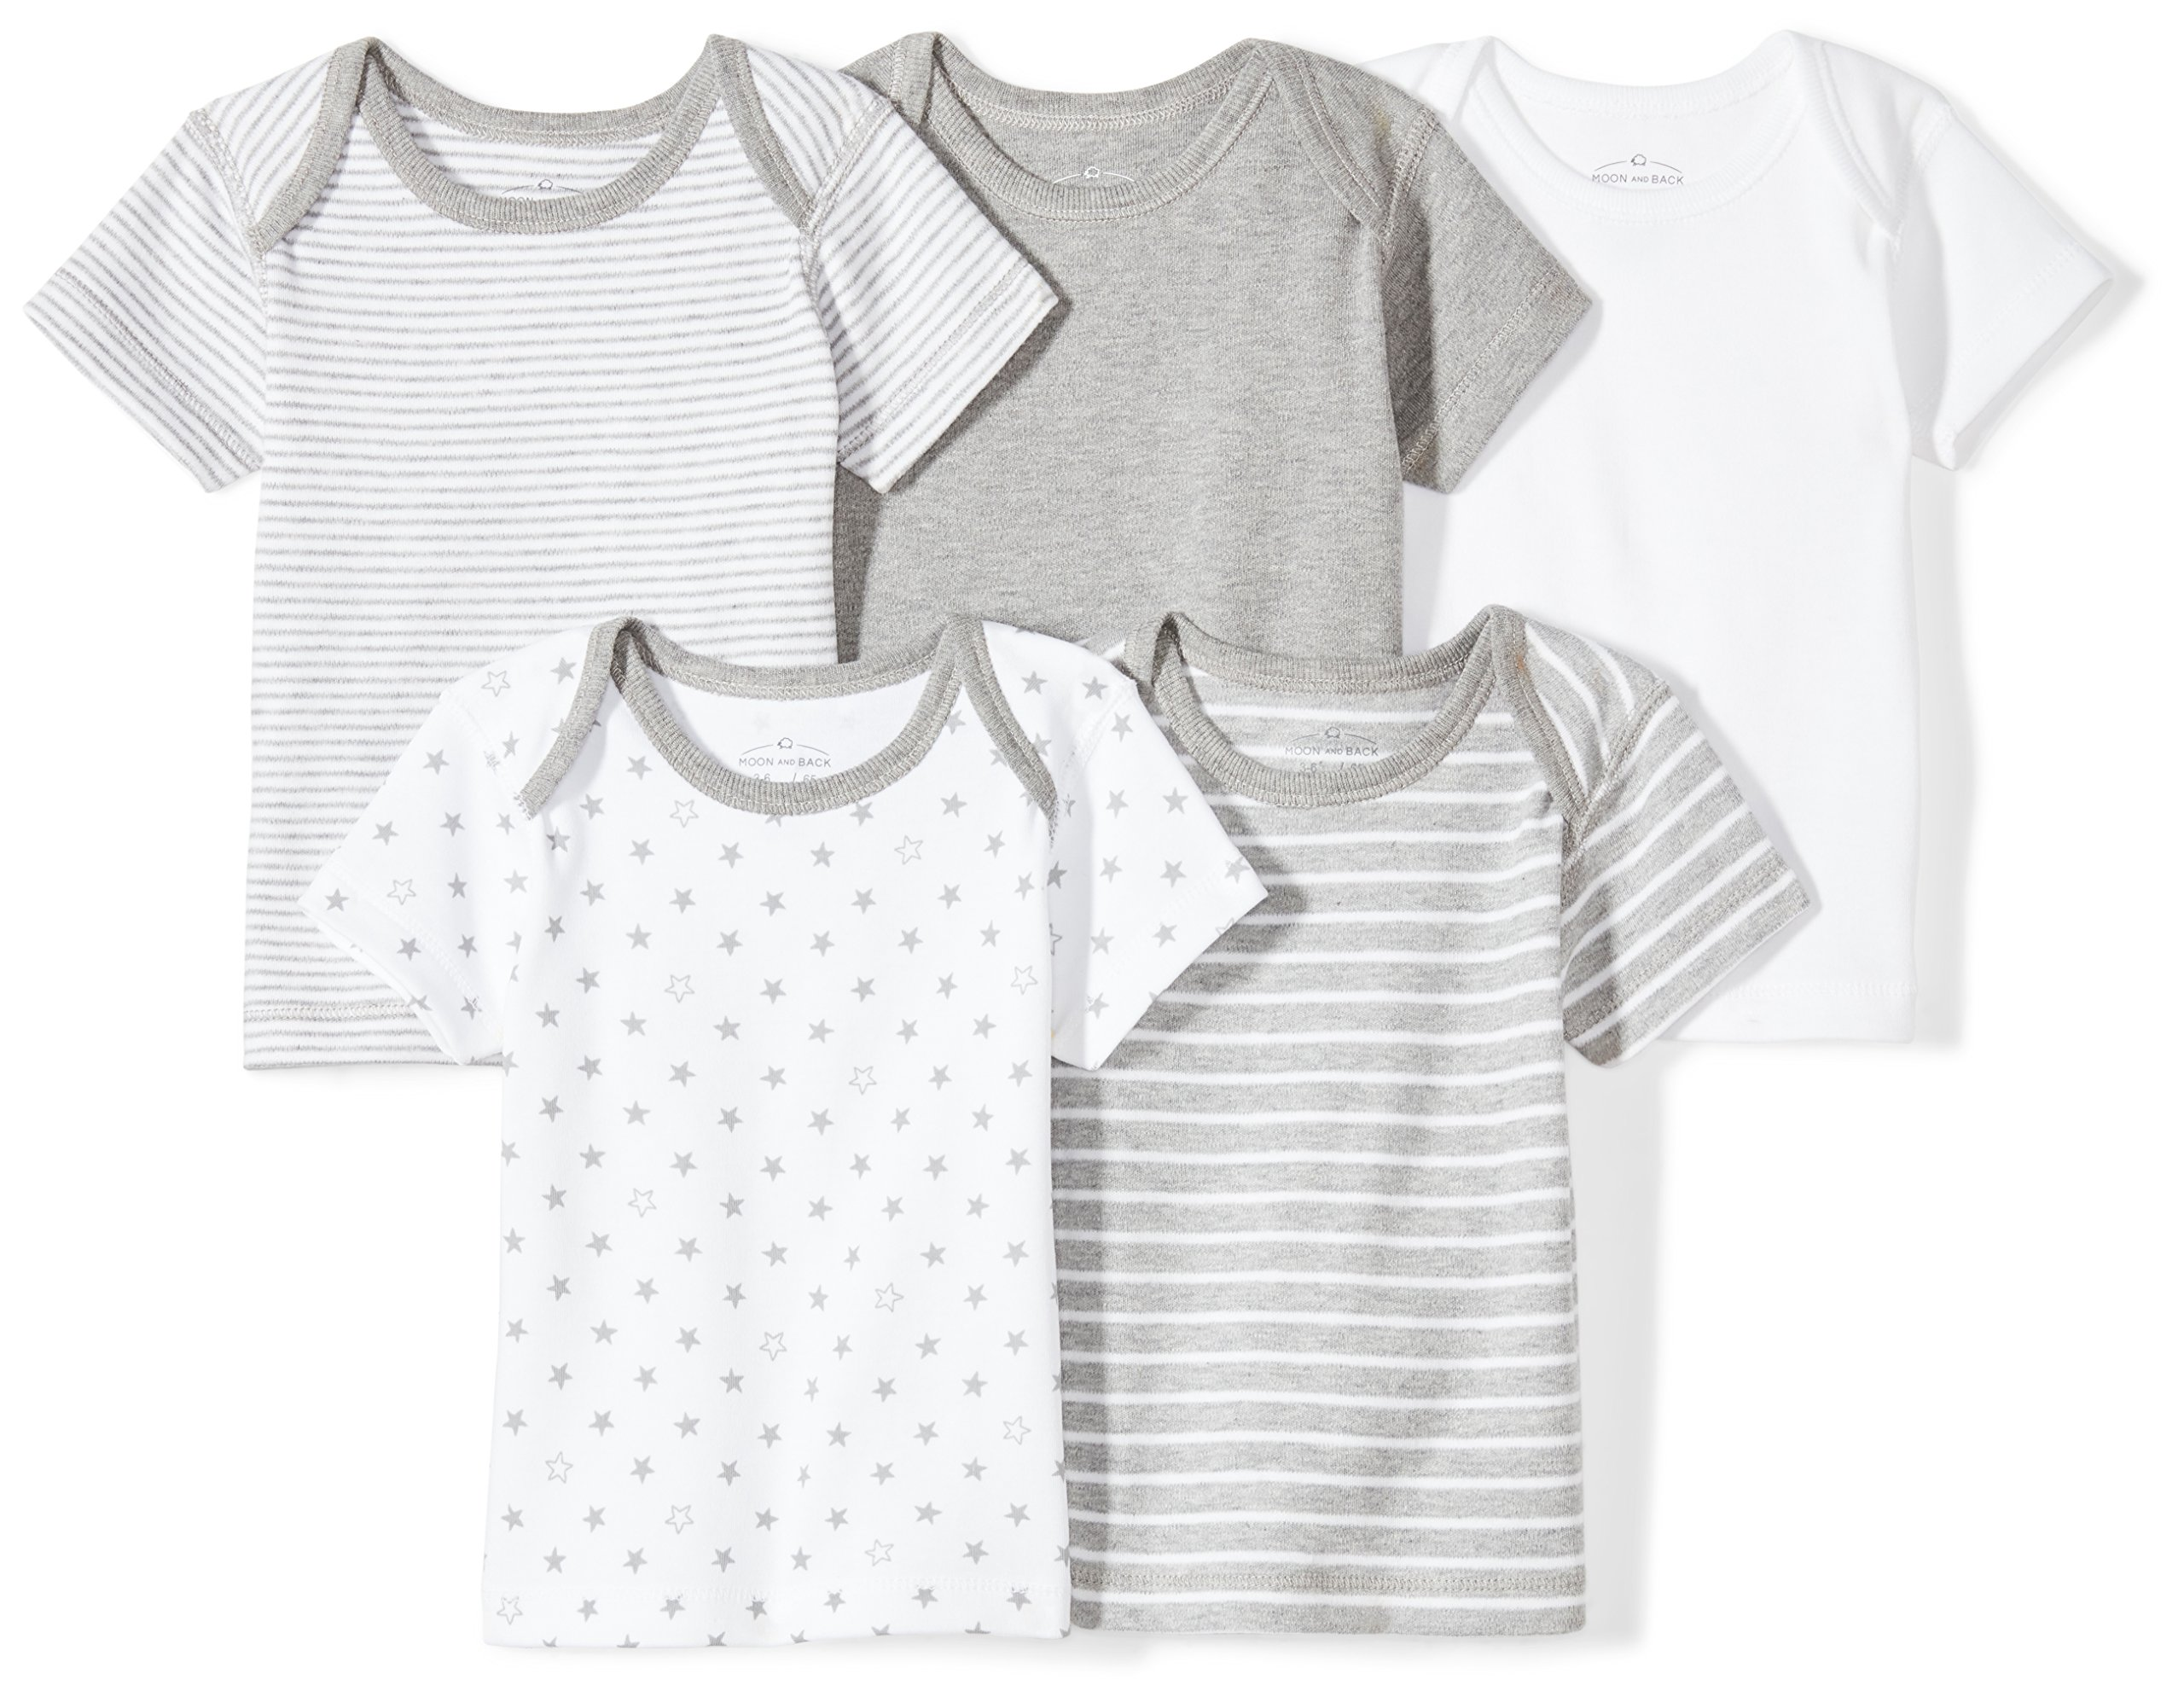 Moon and Back Baby Set of 5 Organic Lap-Neck Crew Short-Sleeve Tee Shirts, Grey Heather, 24 Months by Moon and Back